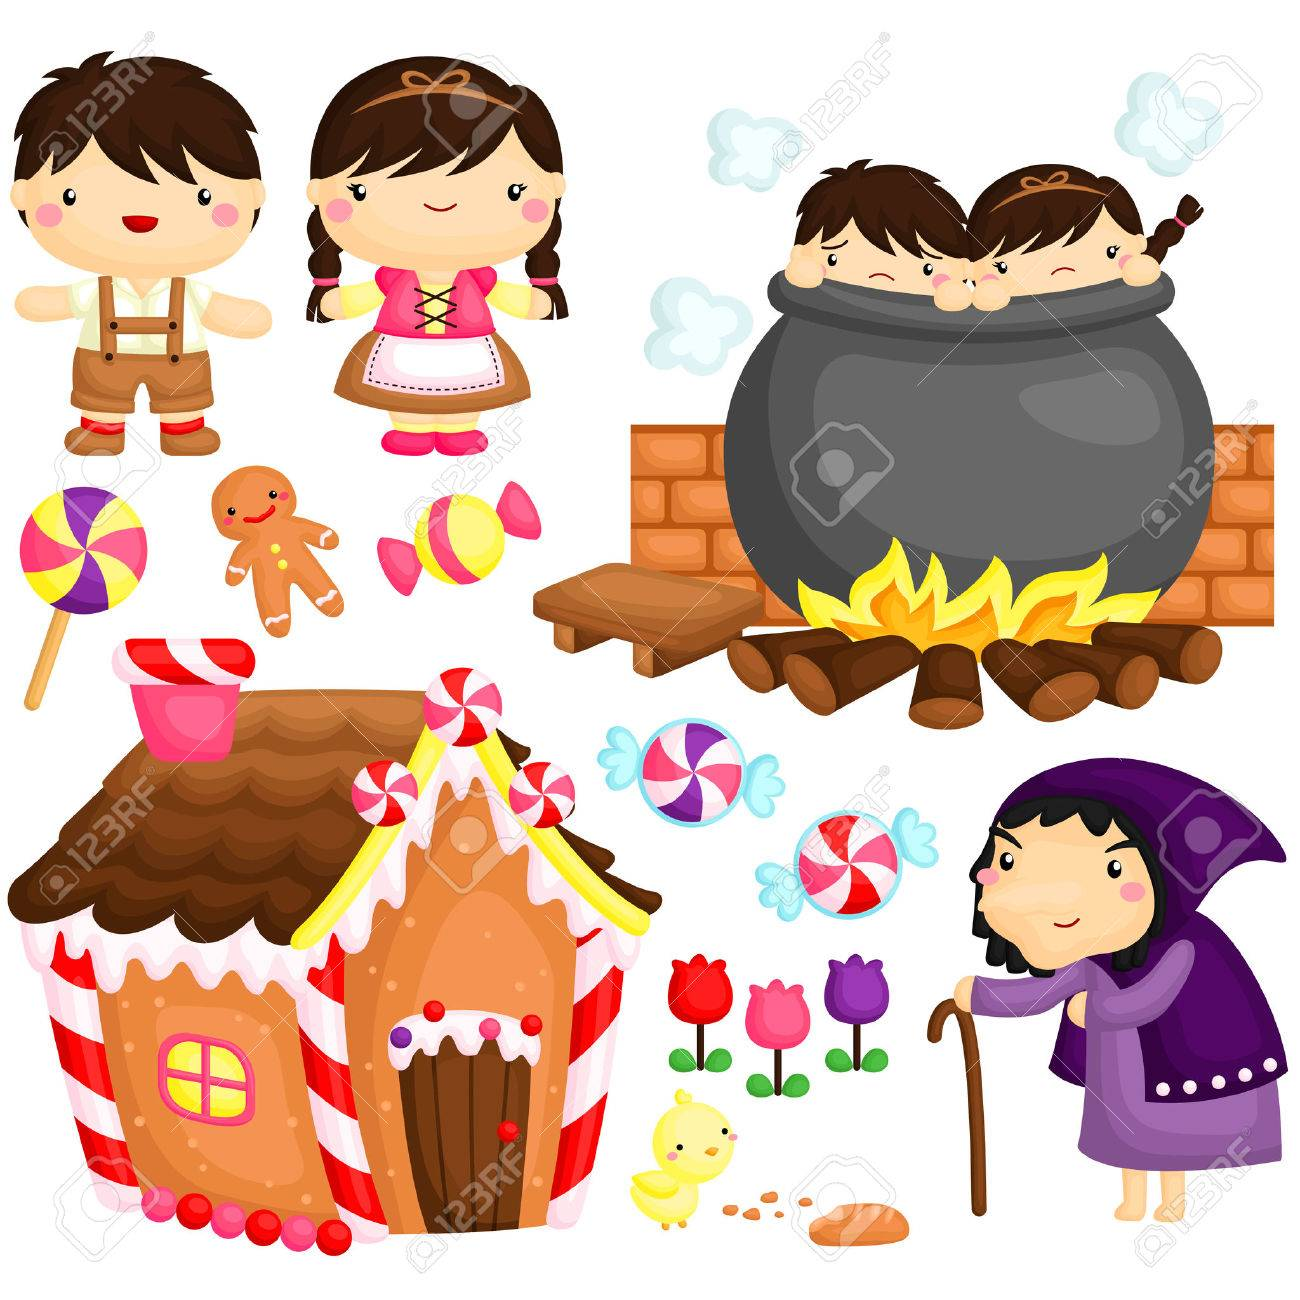 58 hansel and gretel cliparts stock vector and royalty free hansel rh 123rf com clipart hansel and gretel hansel and gretel house clipart